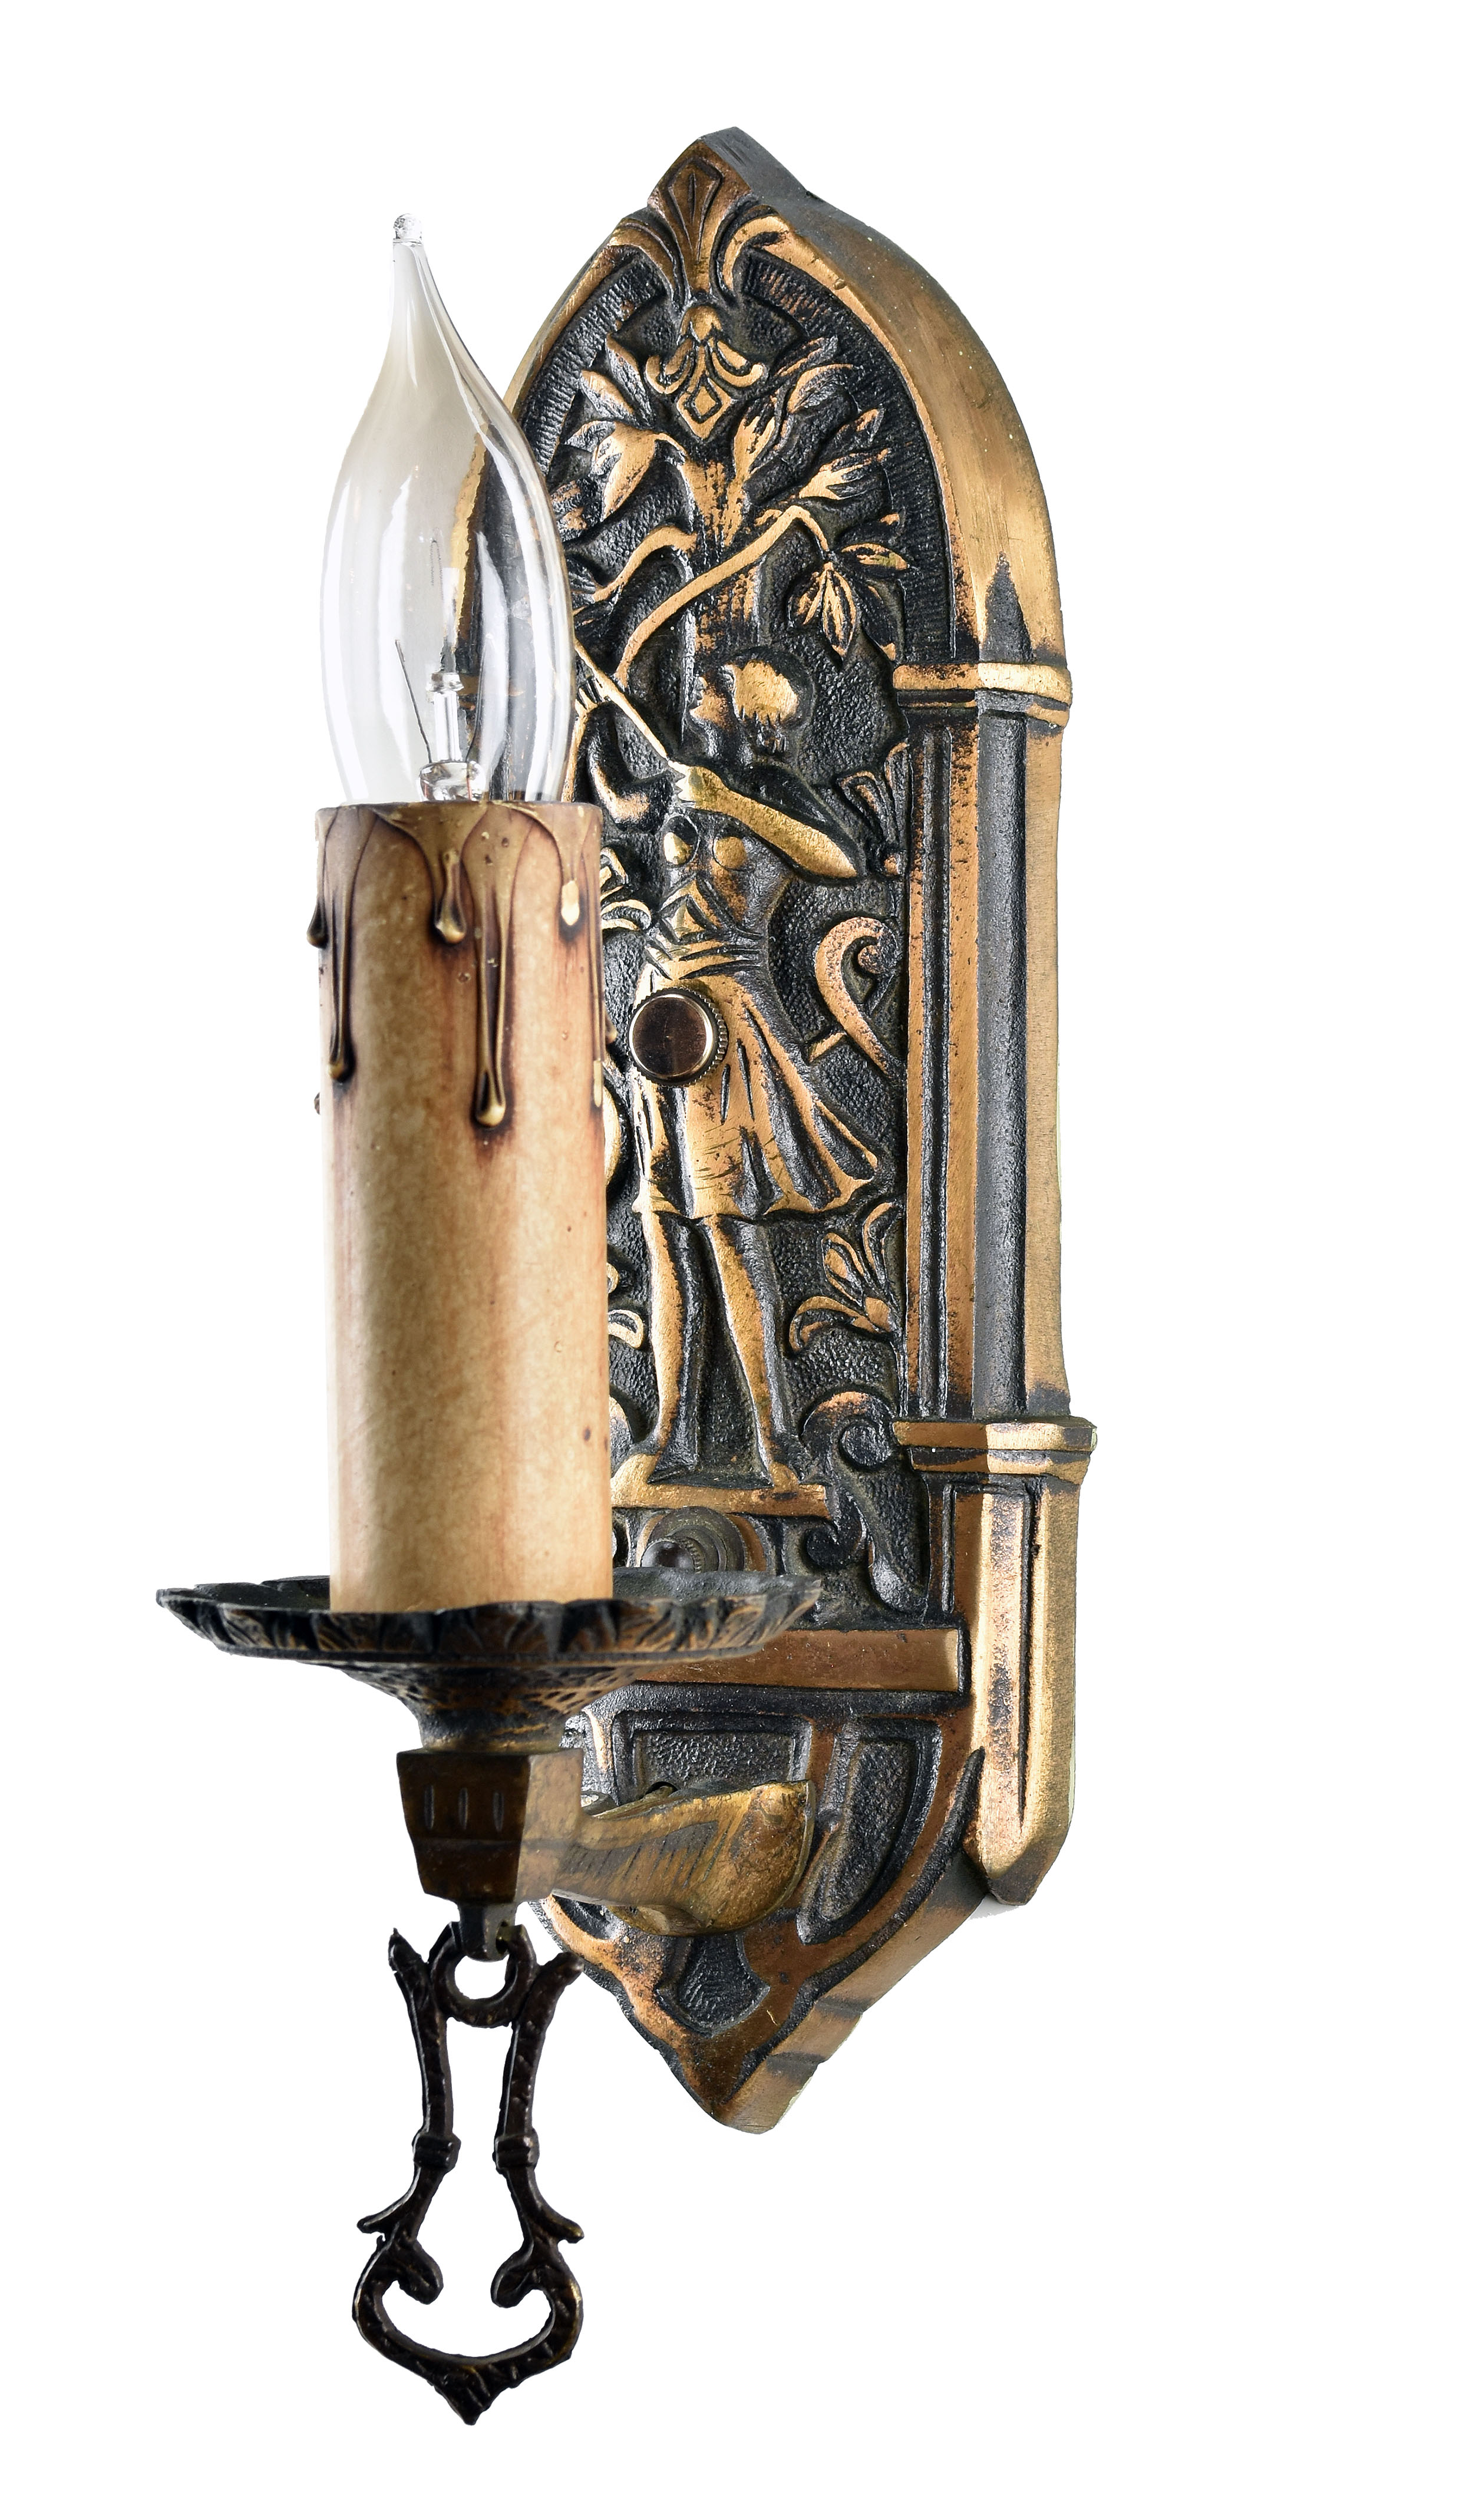 48426 single candle bronze archer sconce right.jpg